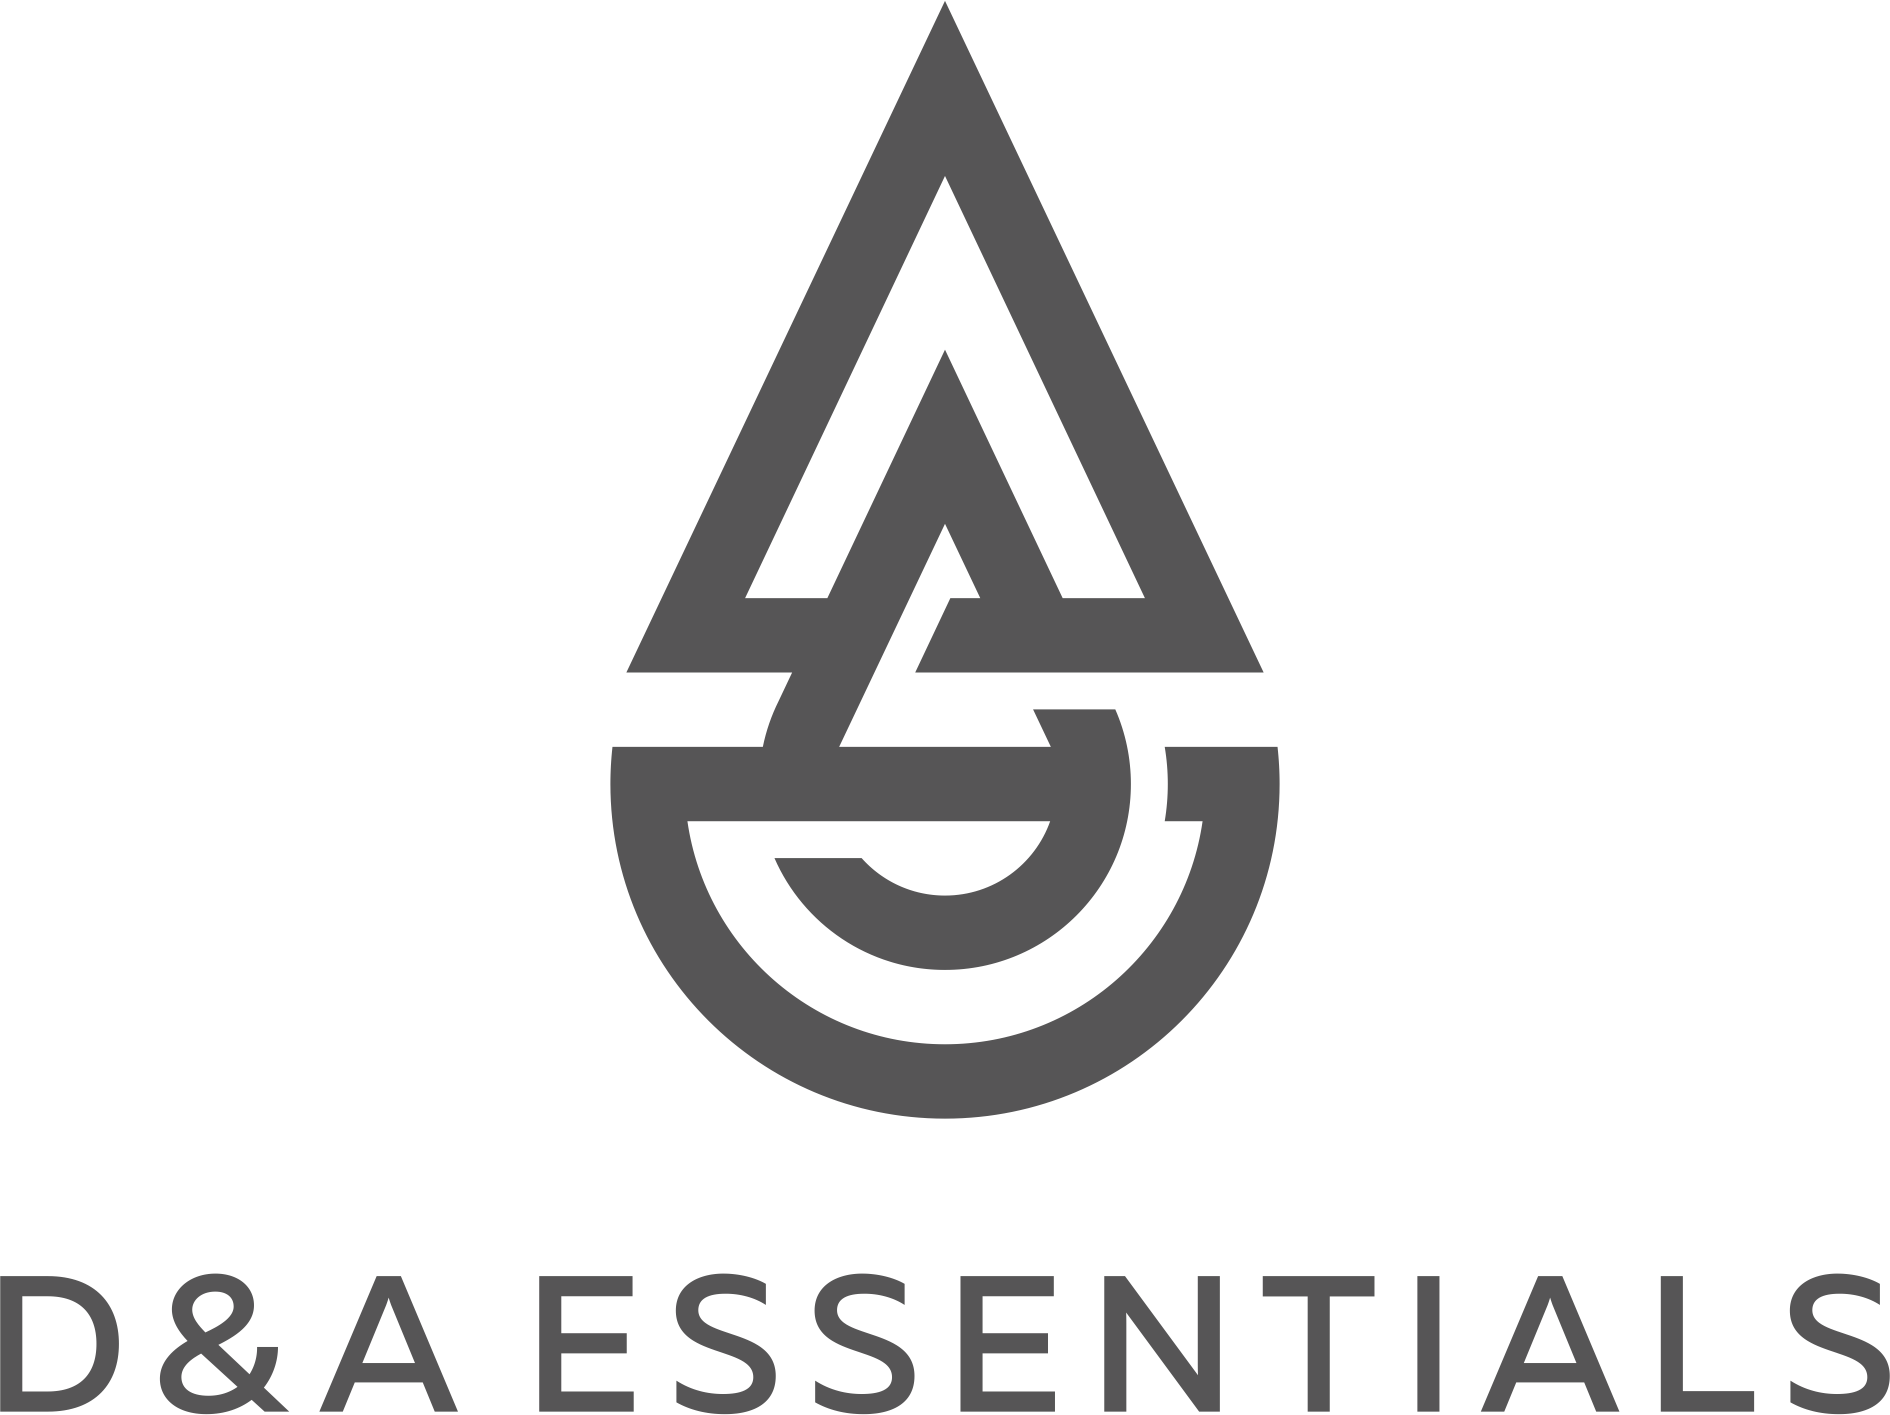 D&A Essentials